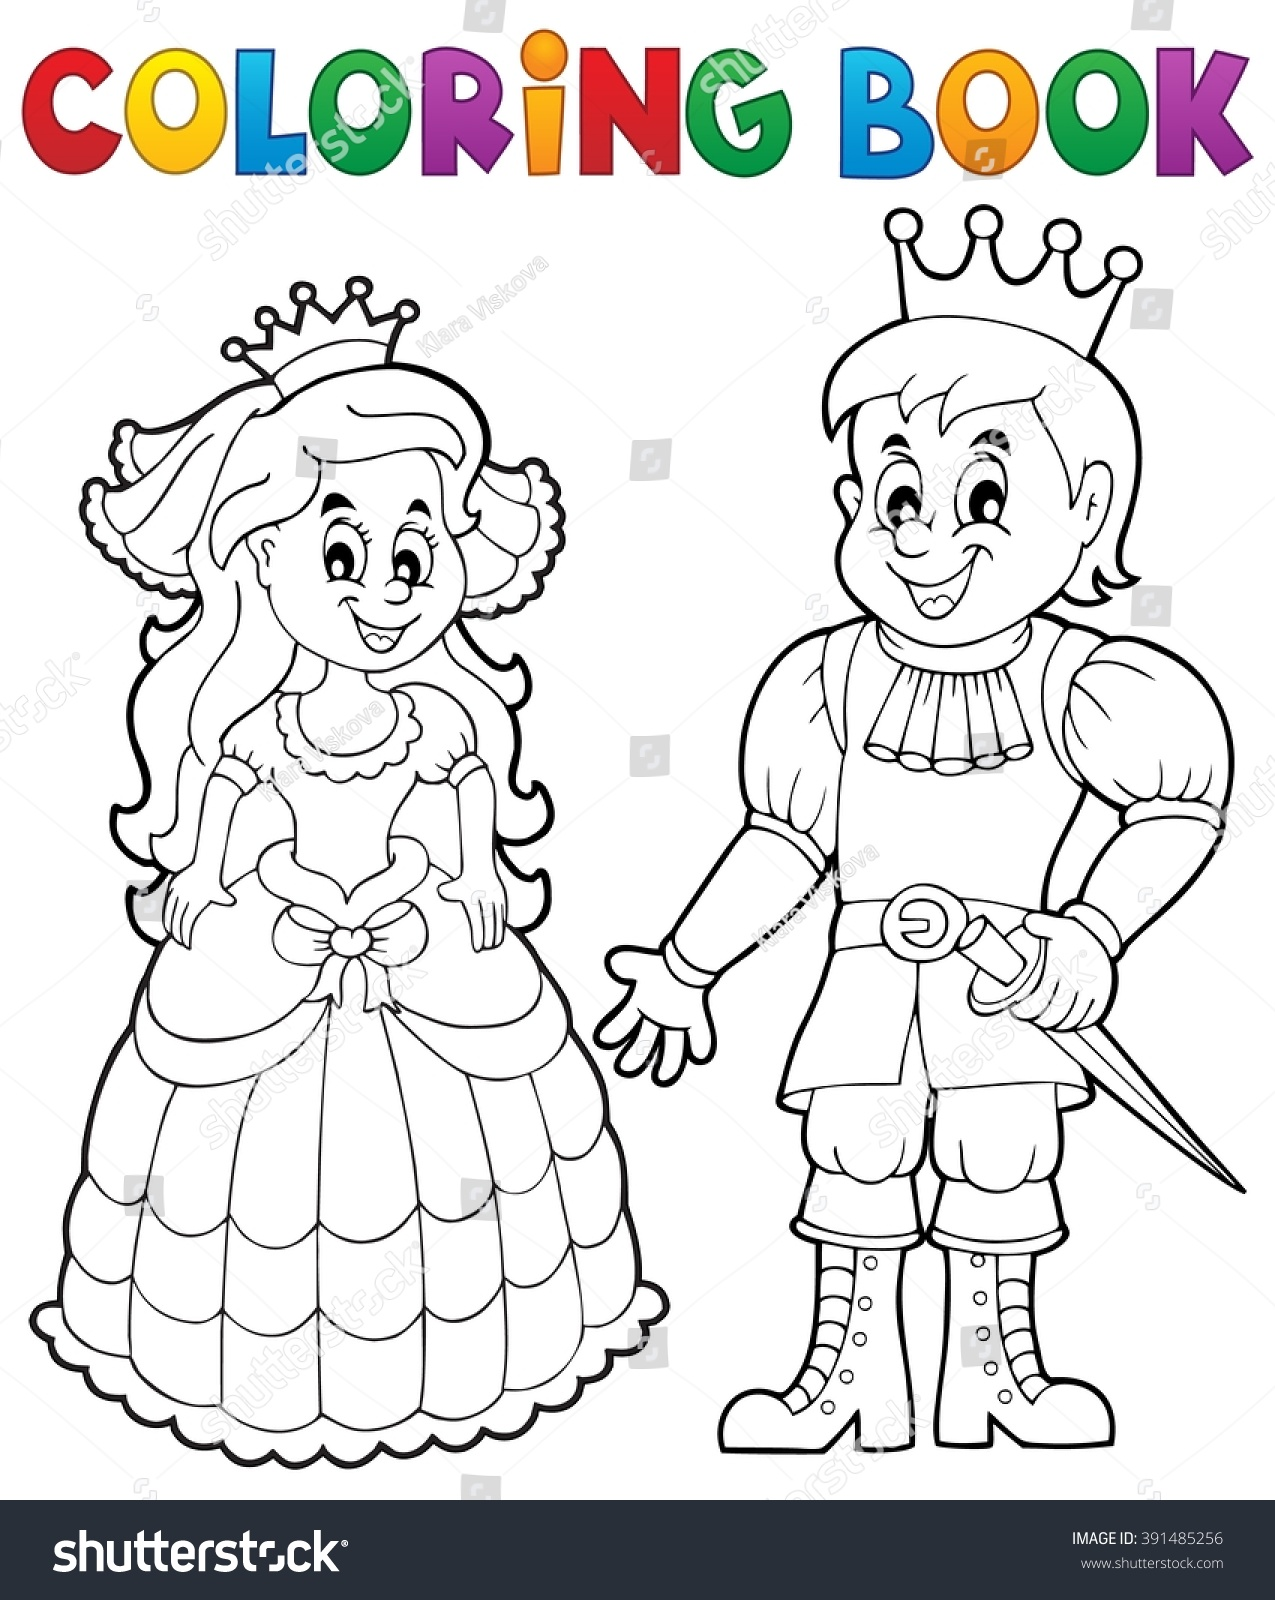 Coloring book princess - Coloring Book Princess And Prince Eps10 Vector Illustration